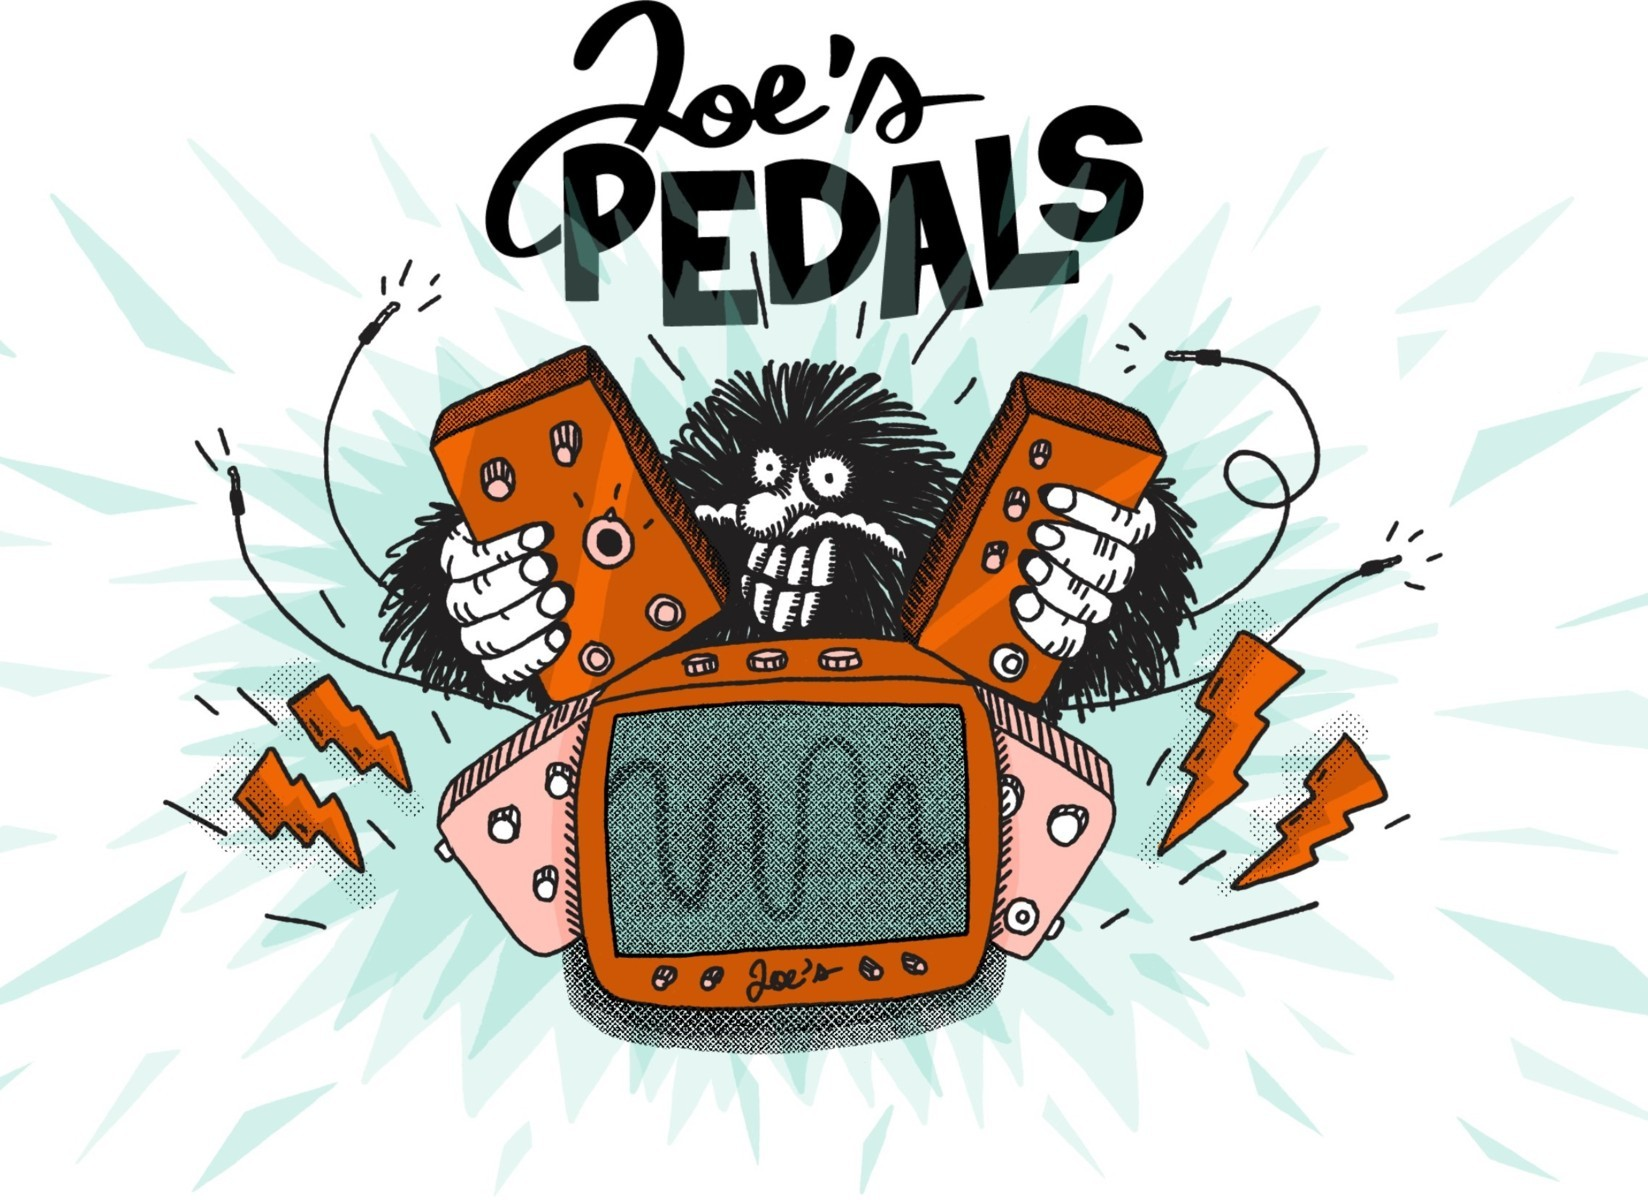 joes-pedals-new-uk-dealer